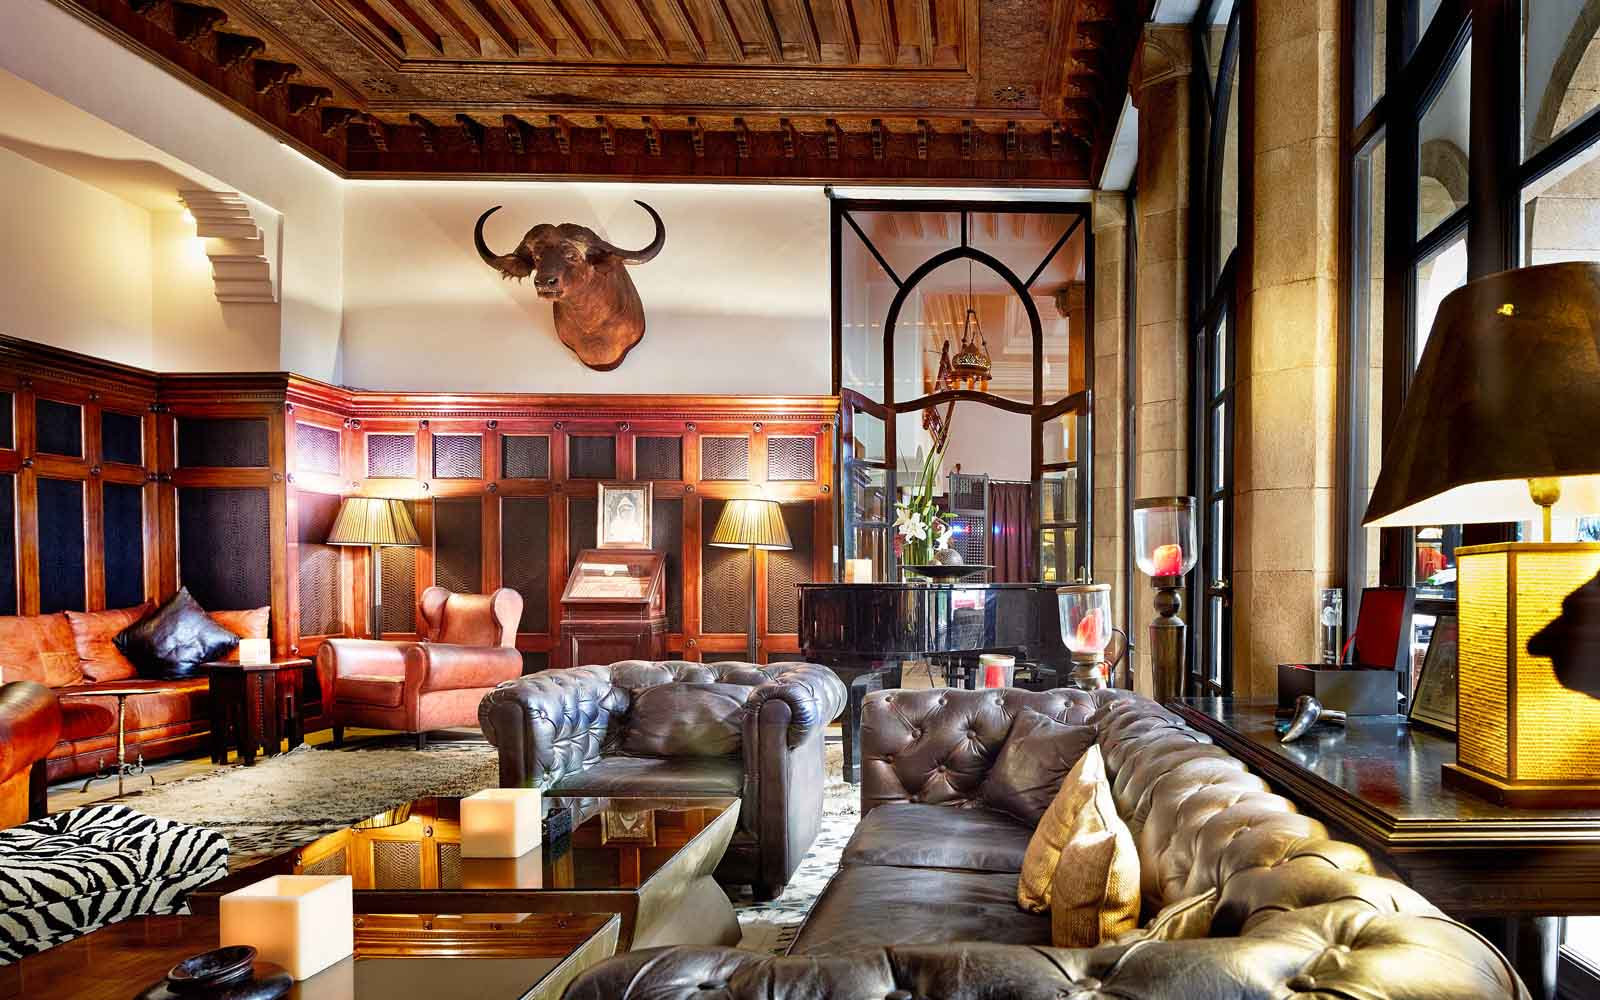 Heure Bleue Palais Essaouira Morocco Hotel Authentic Moroccan riad